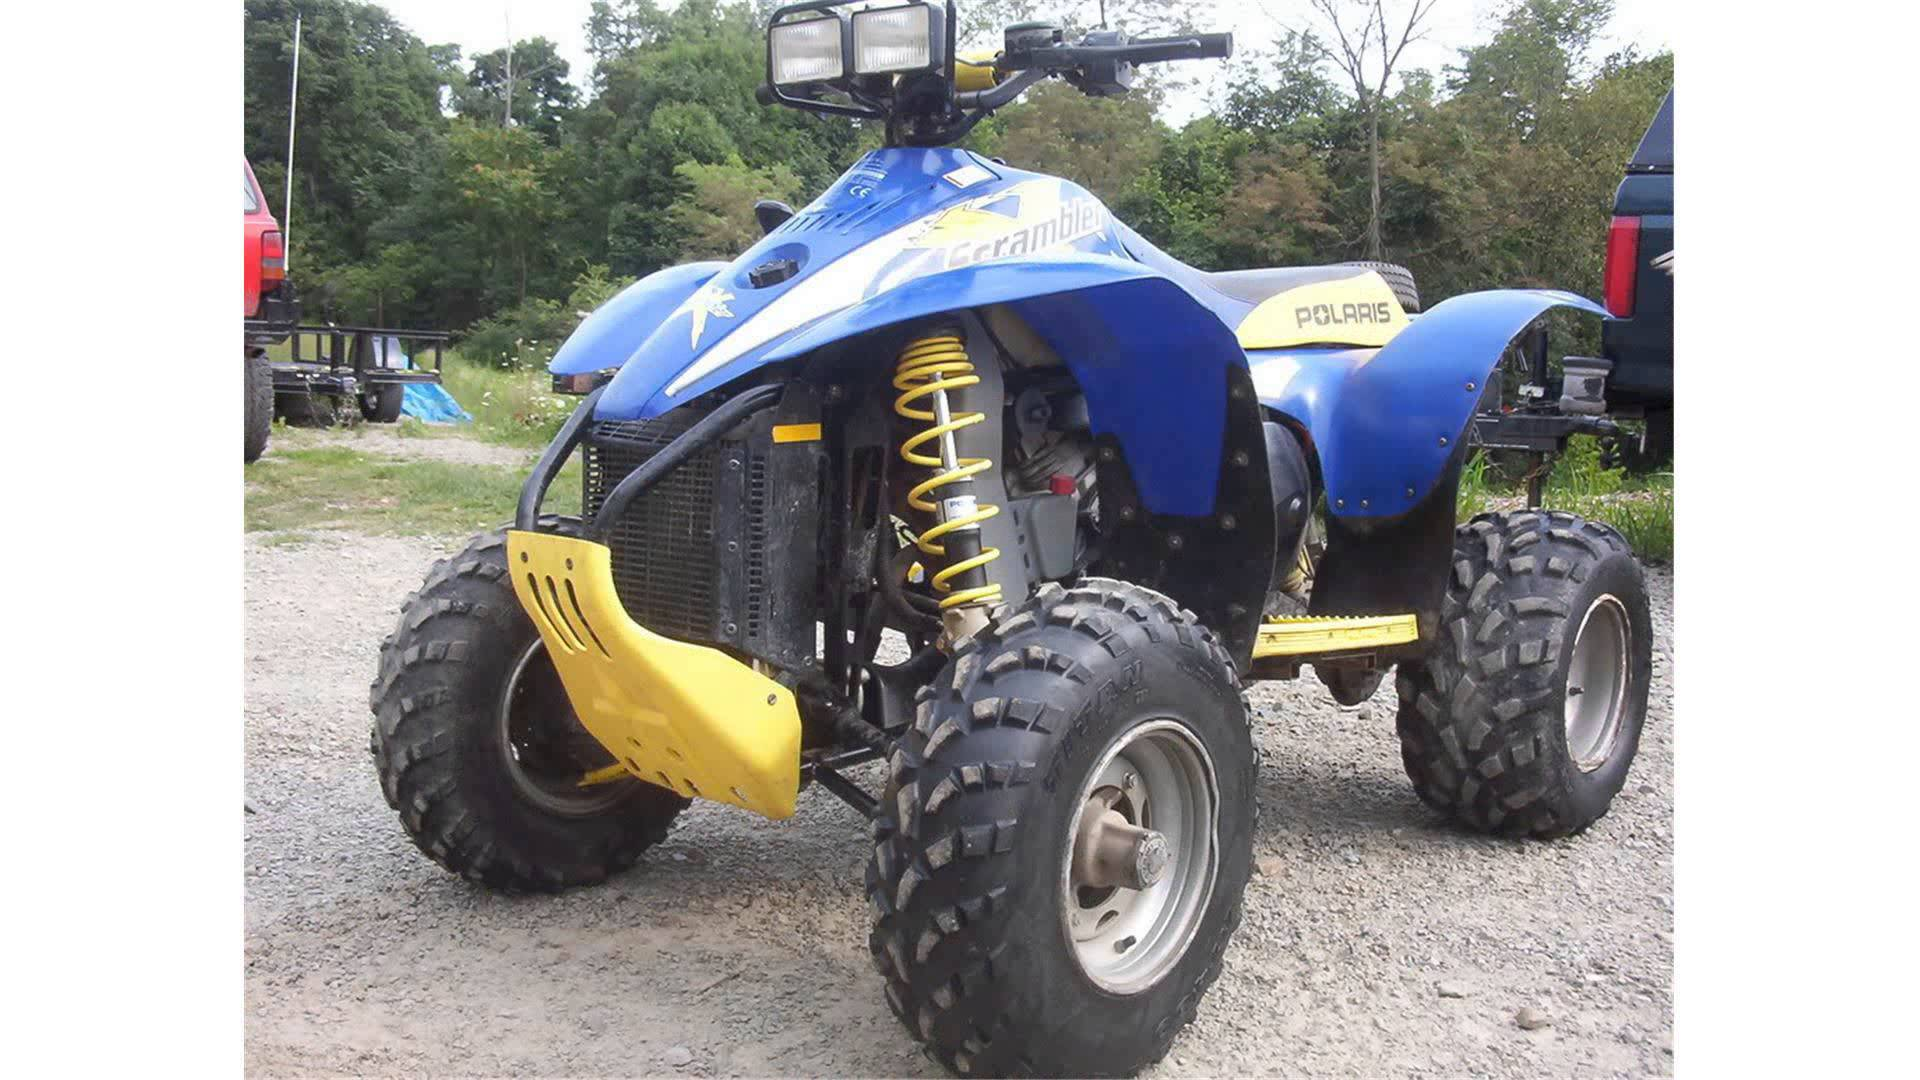 Polaris Scrambler 500 4x4 2005 images #121185